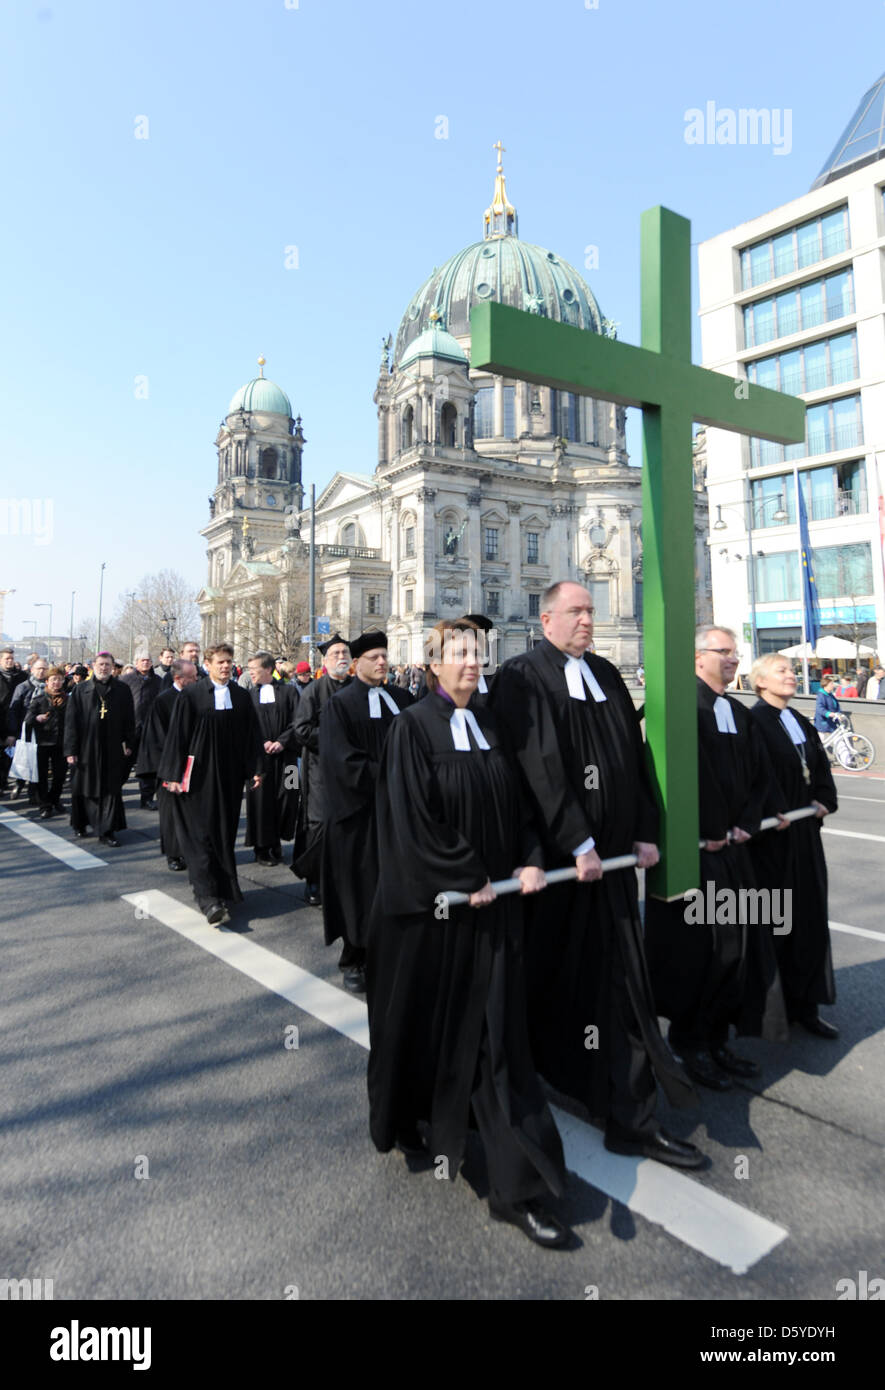 People attend the Good Friday Procession in Berlin, Germany, 06 April 2012. Numerous Christians gathered to attend - Stock Image